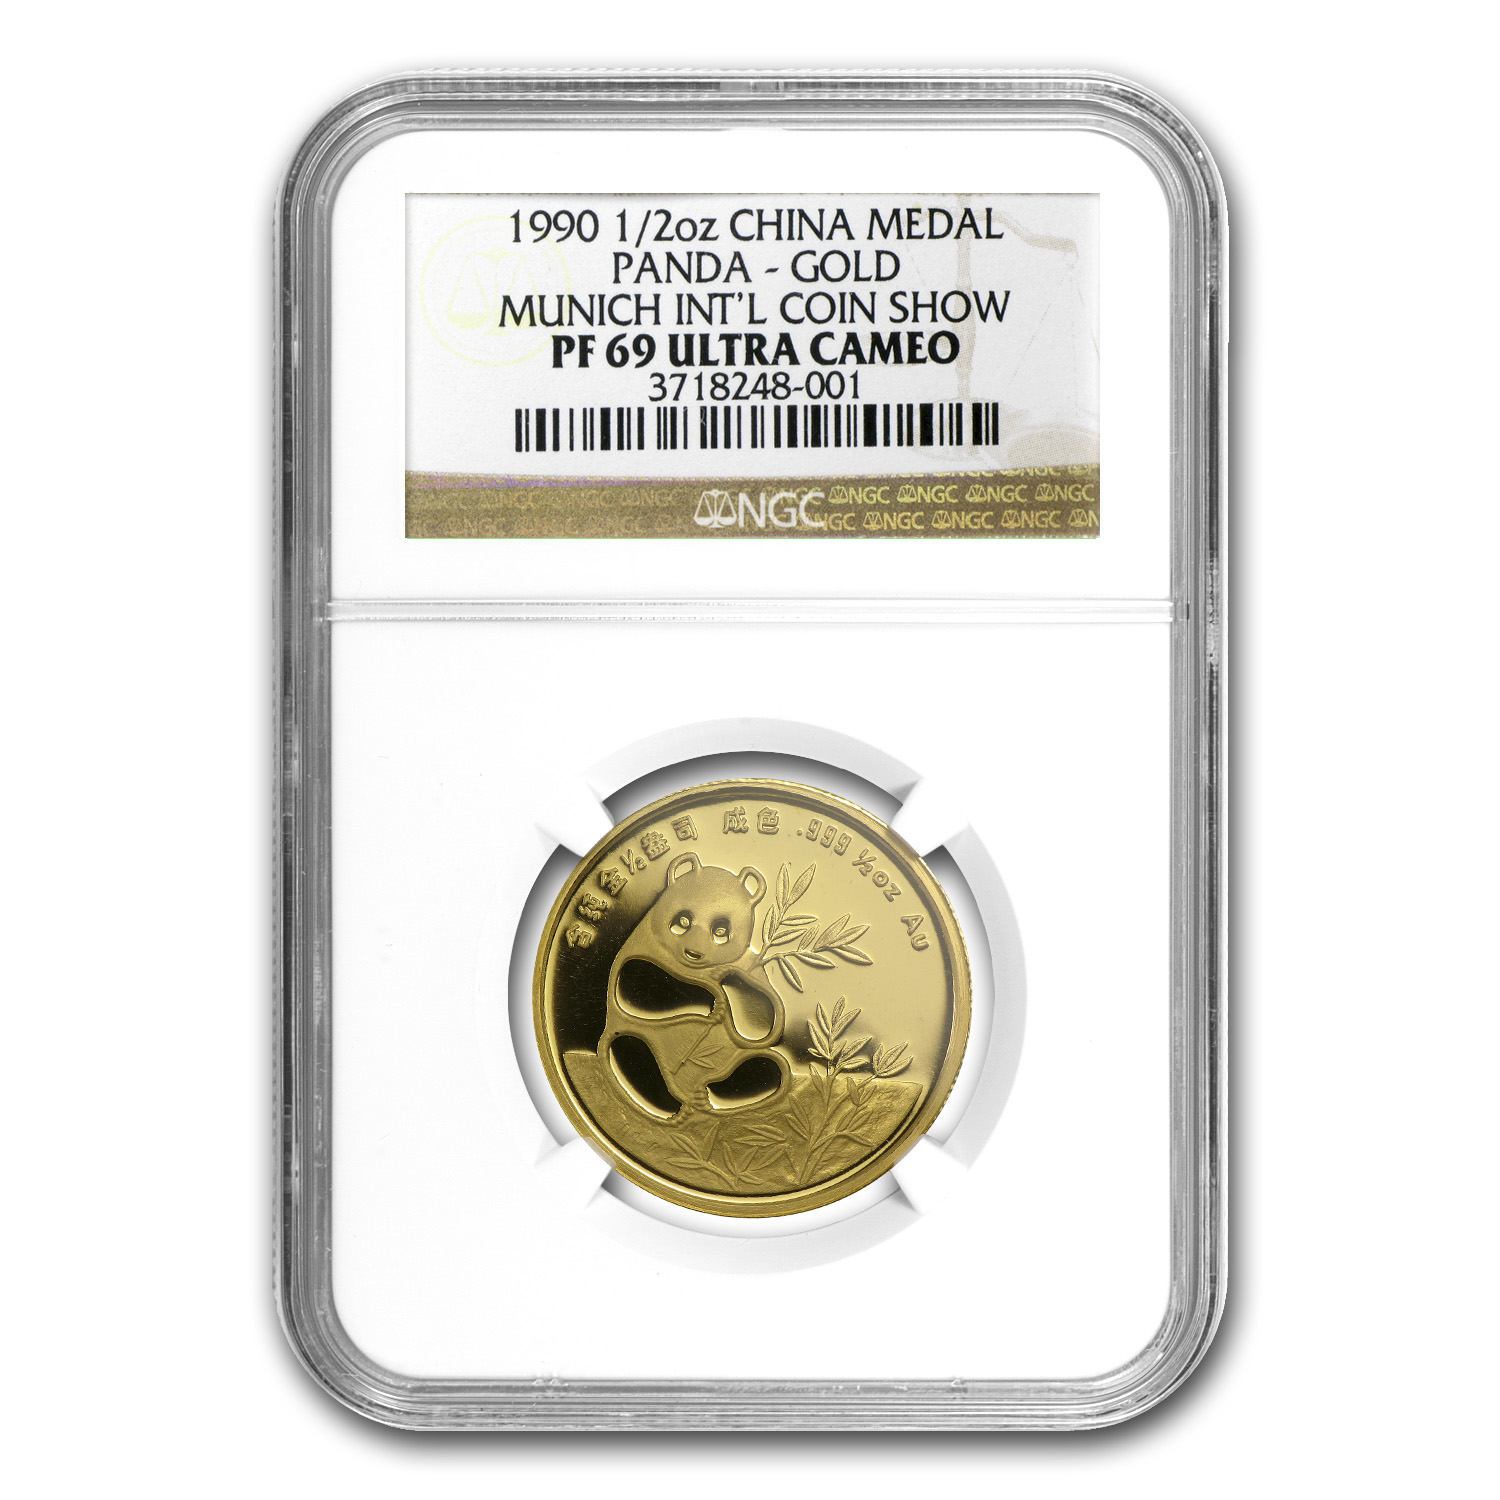 1990 China 1/2 oz Gold Panda PF-69 NGC (Munich Coin Fair Medal)